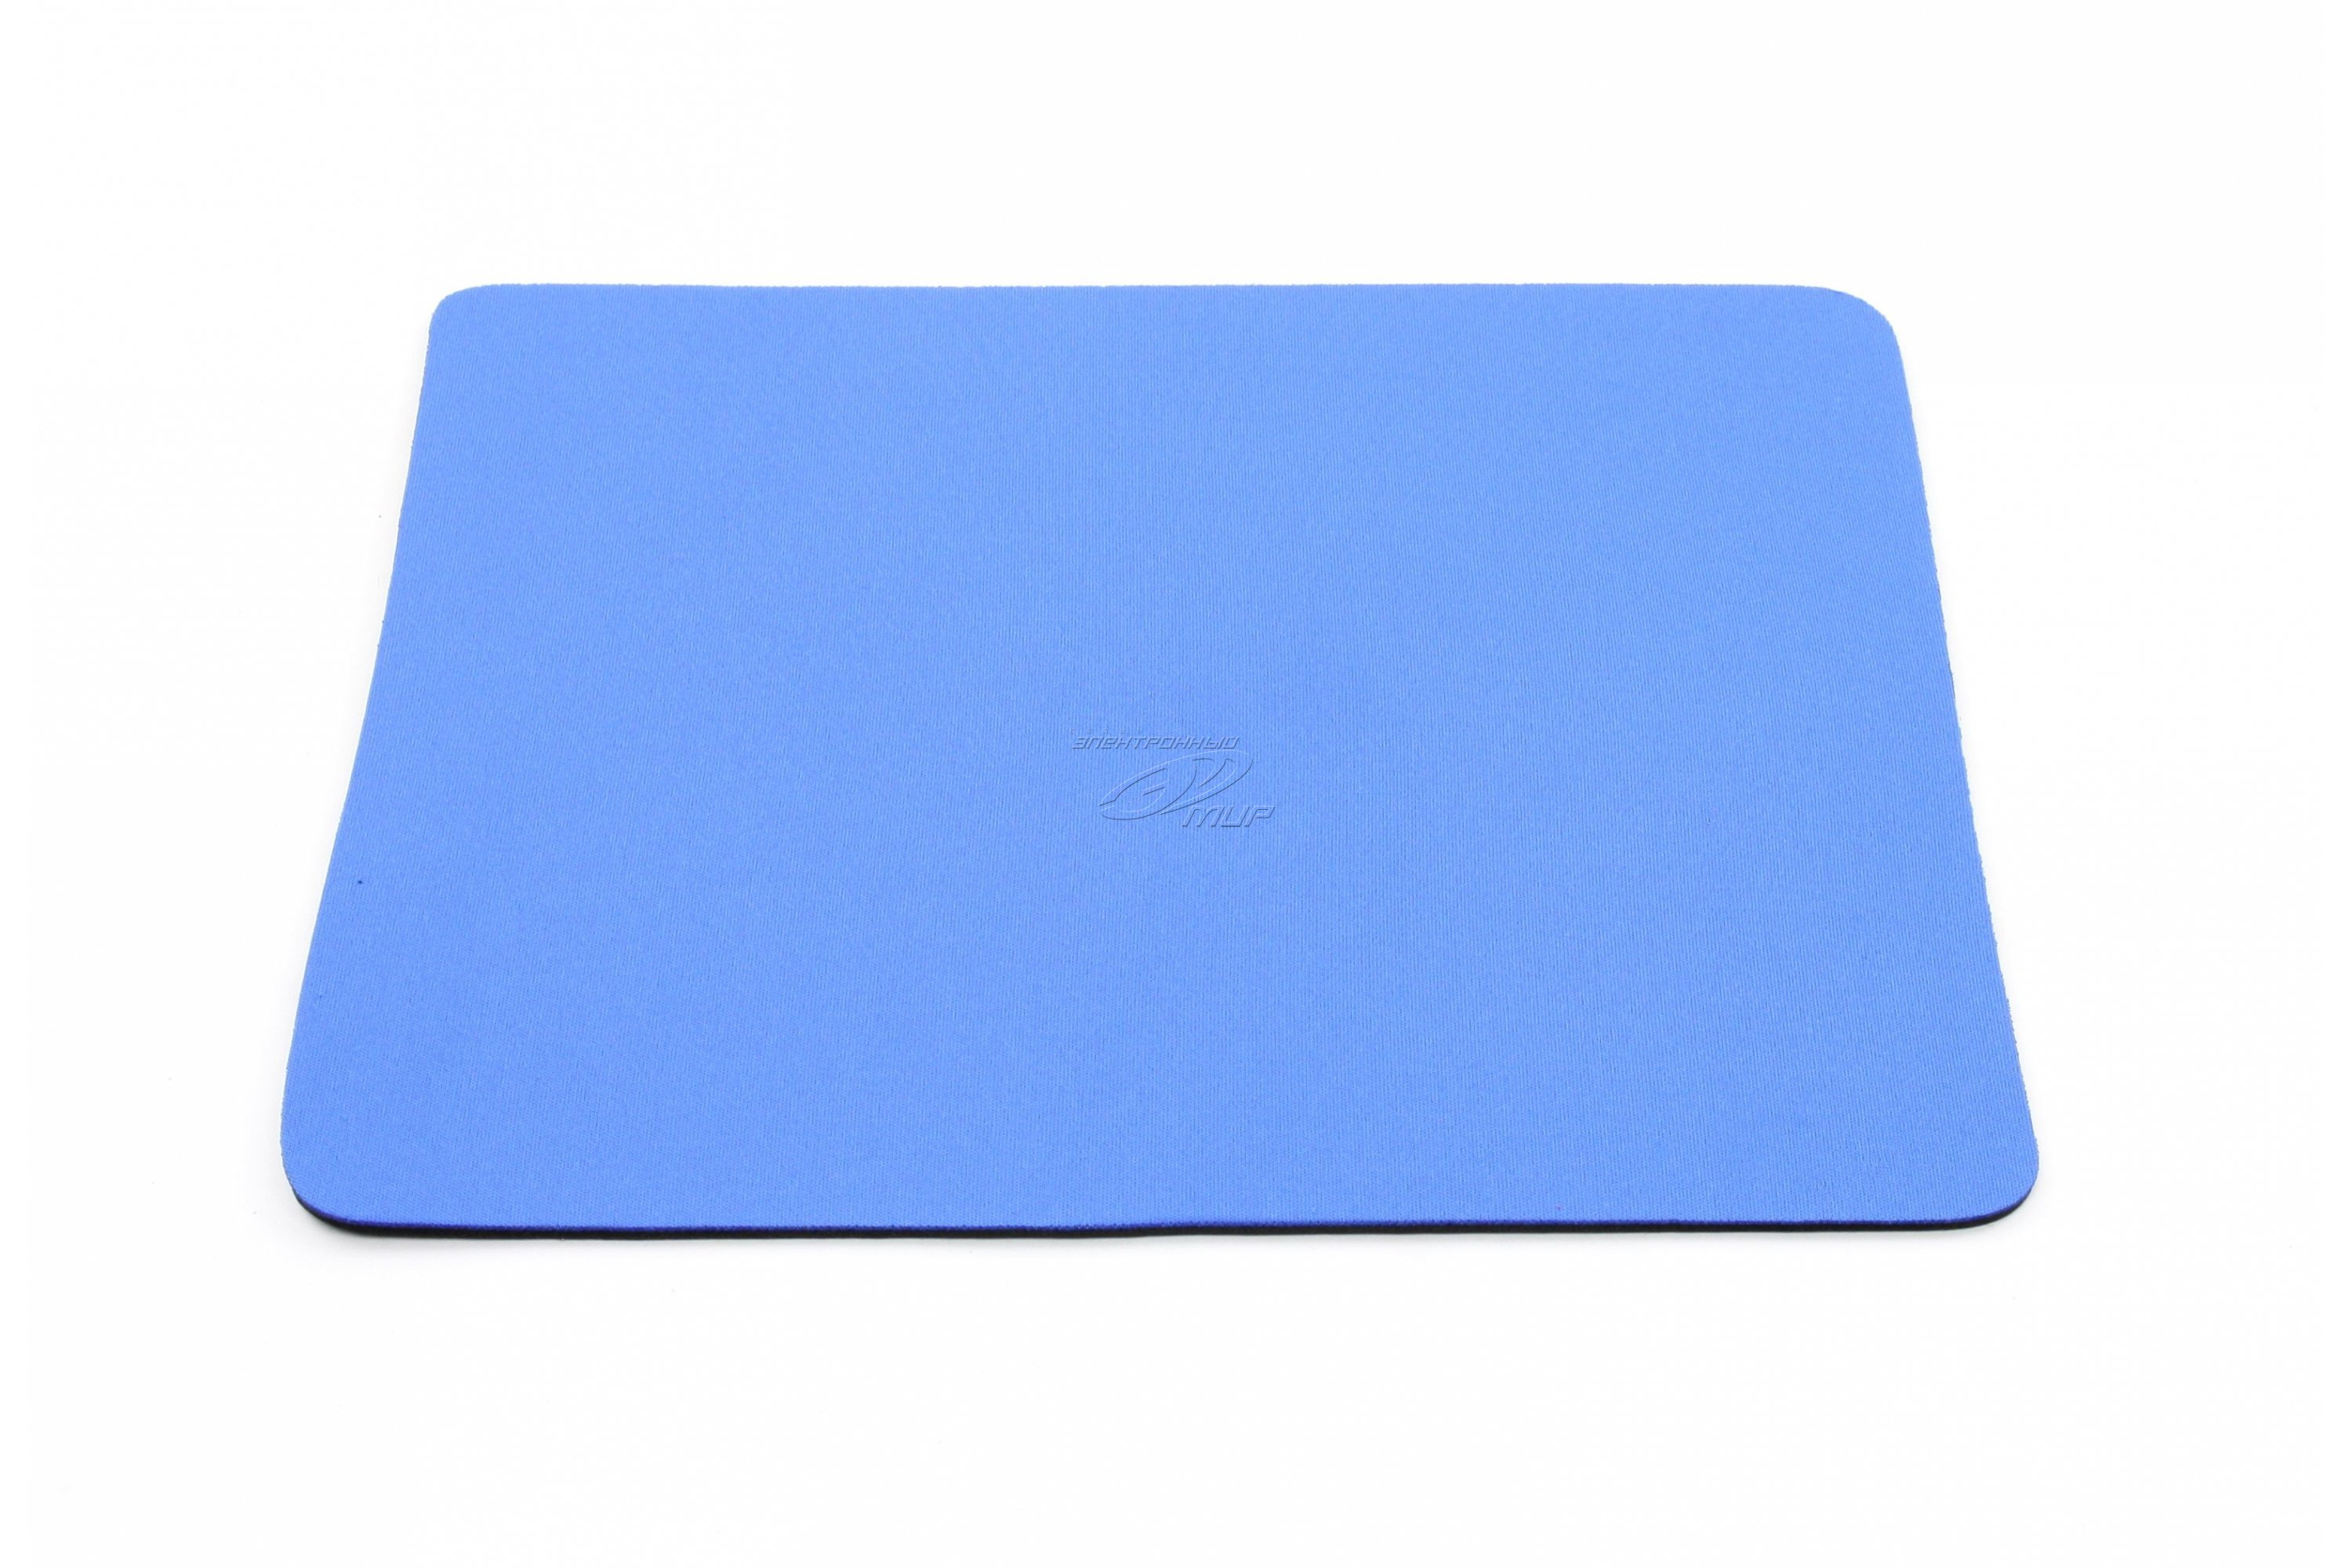 GEMBIRD MP-A1B1 Podloga za misa blue 220x250mm